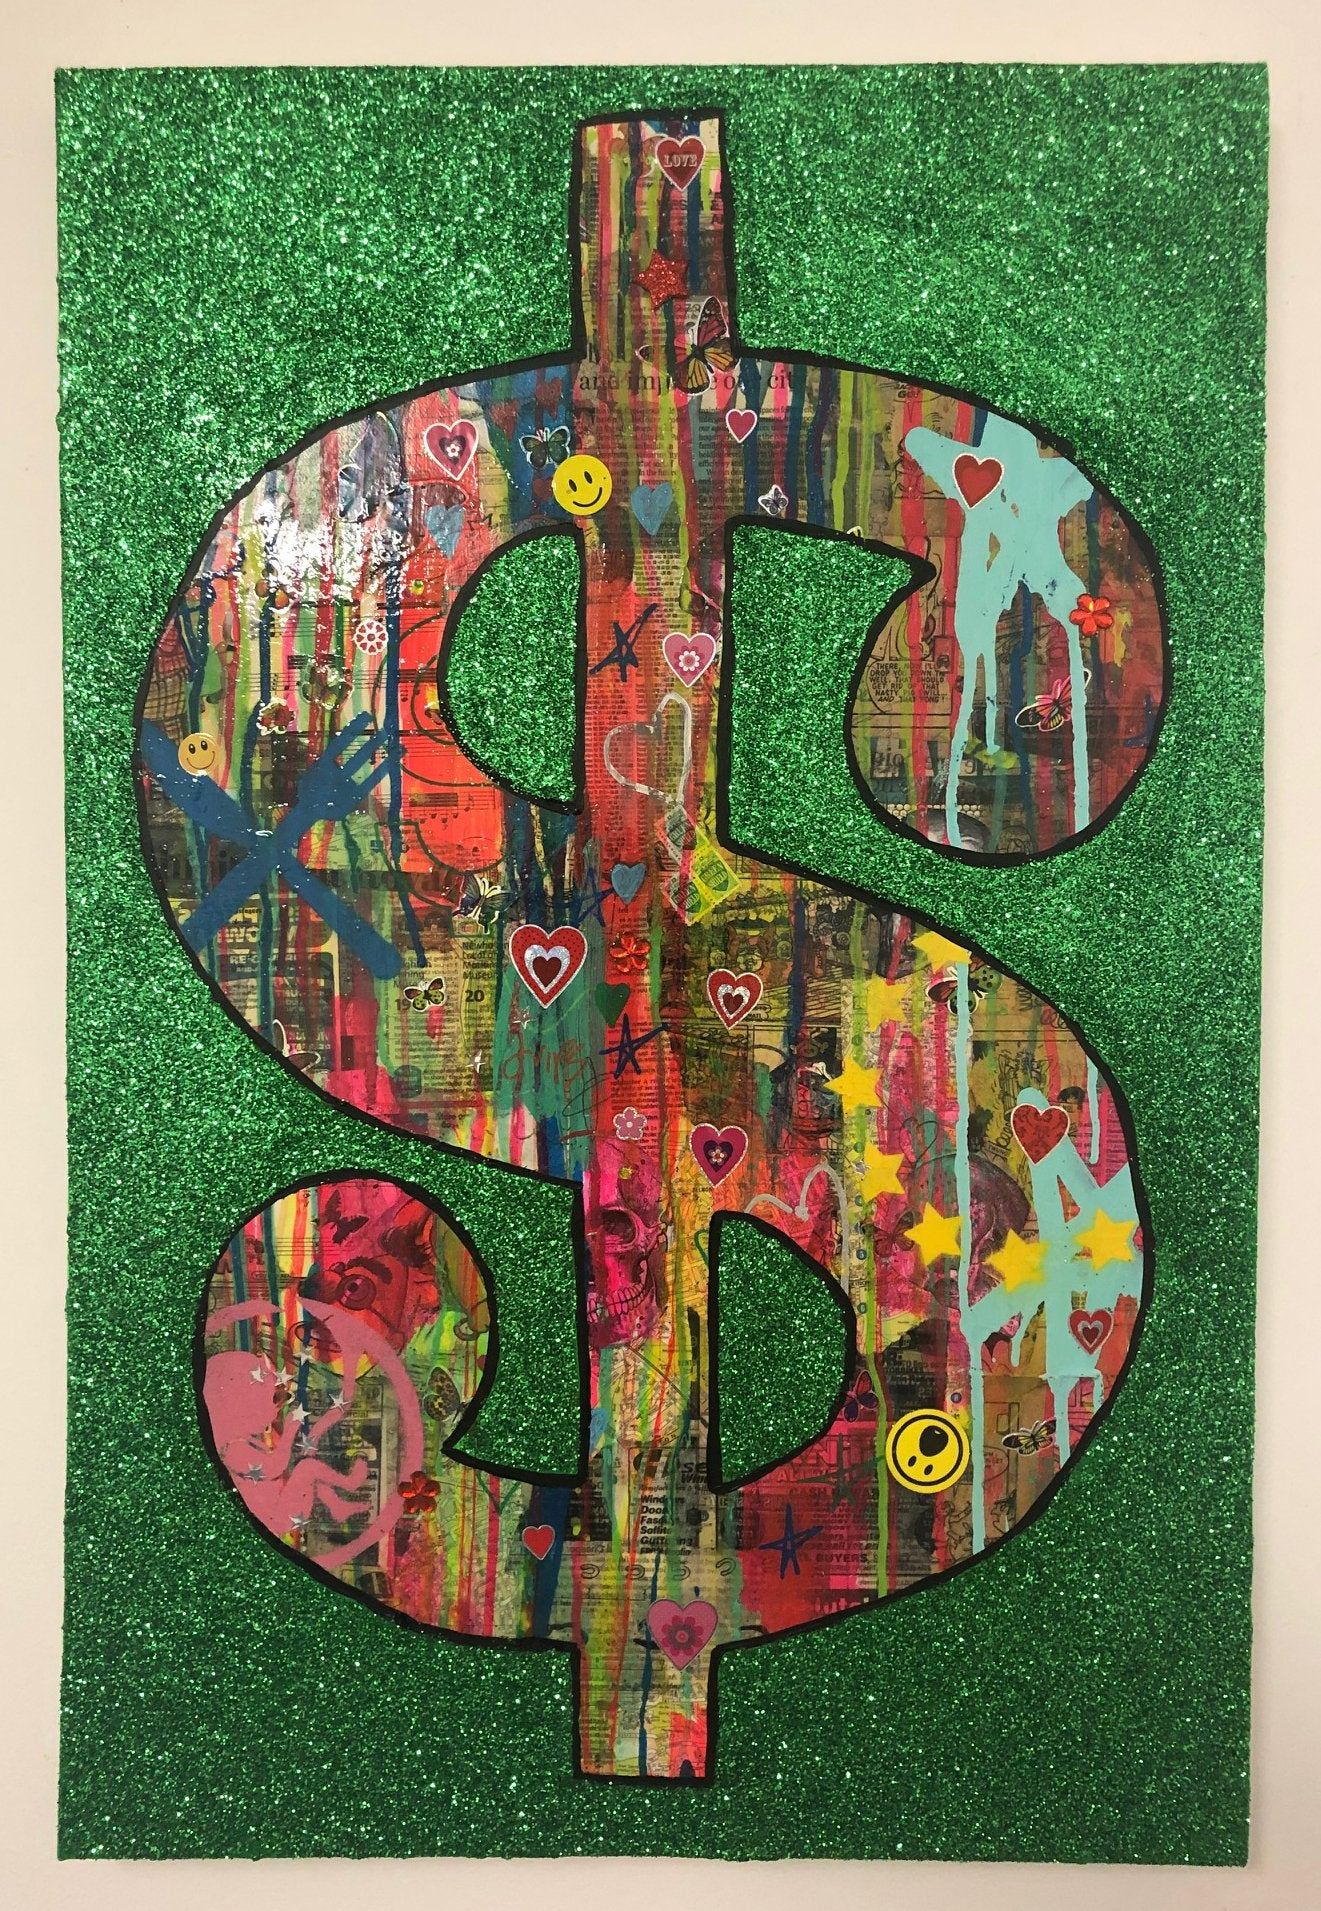 Cash rules Everything Around Me by Barrie J Davies 2019, mixed media on canvas, Unframed, 50cm x 75cm. Barrie J Davies is an Artist - Pop Art and Street art inspired Artist based in Brighton England UK - Pop Art Paintings, Street Art Prints & Editions available.